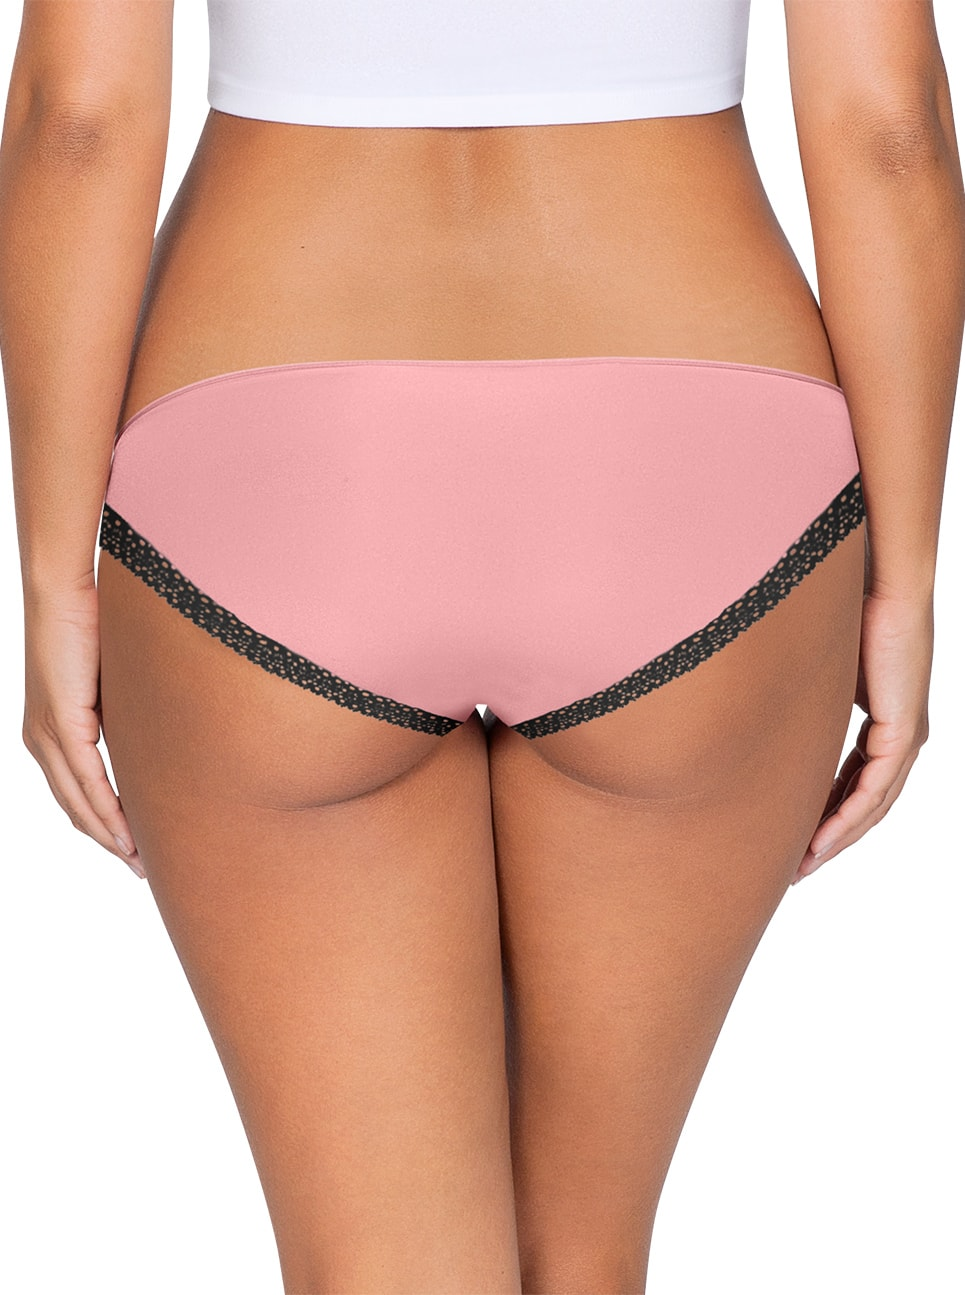 ParfaitPanty Solovely Bikini PP301 D PinkBack close - Panty So Lovely Bikini Quartz Pink PP301